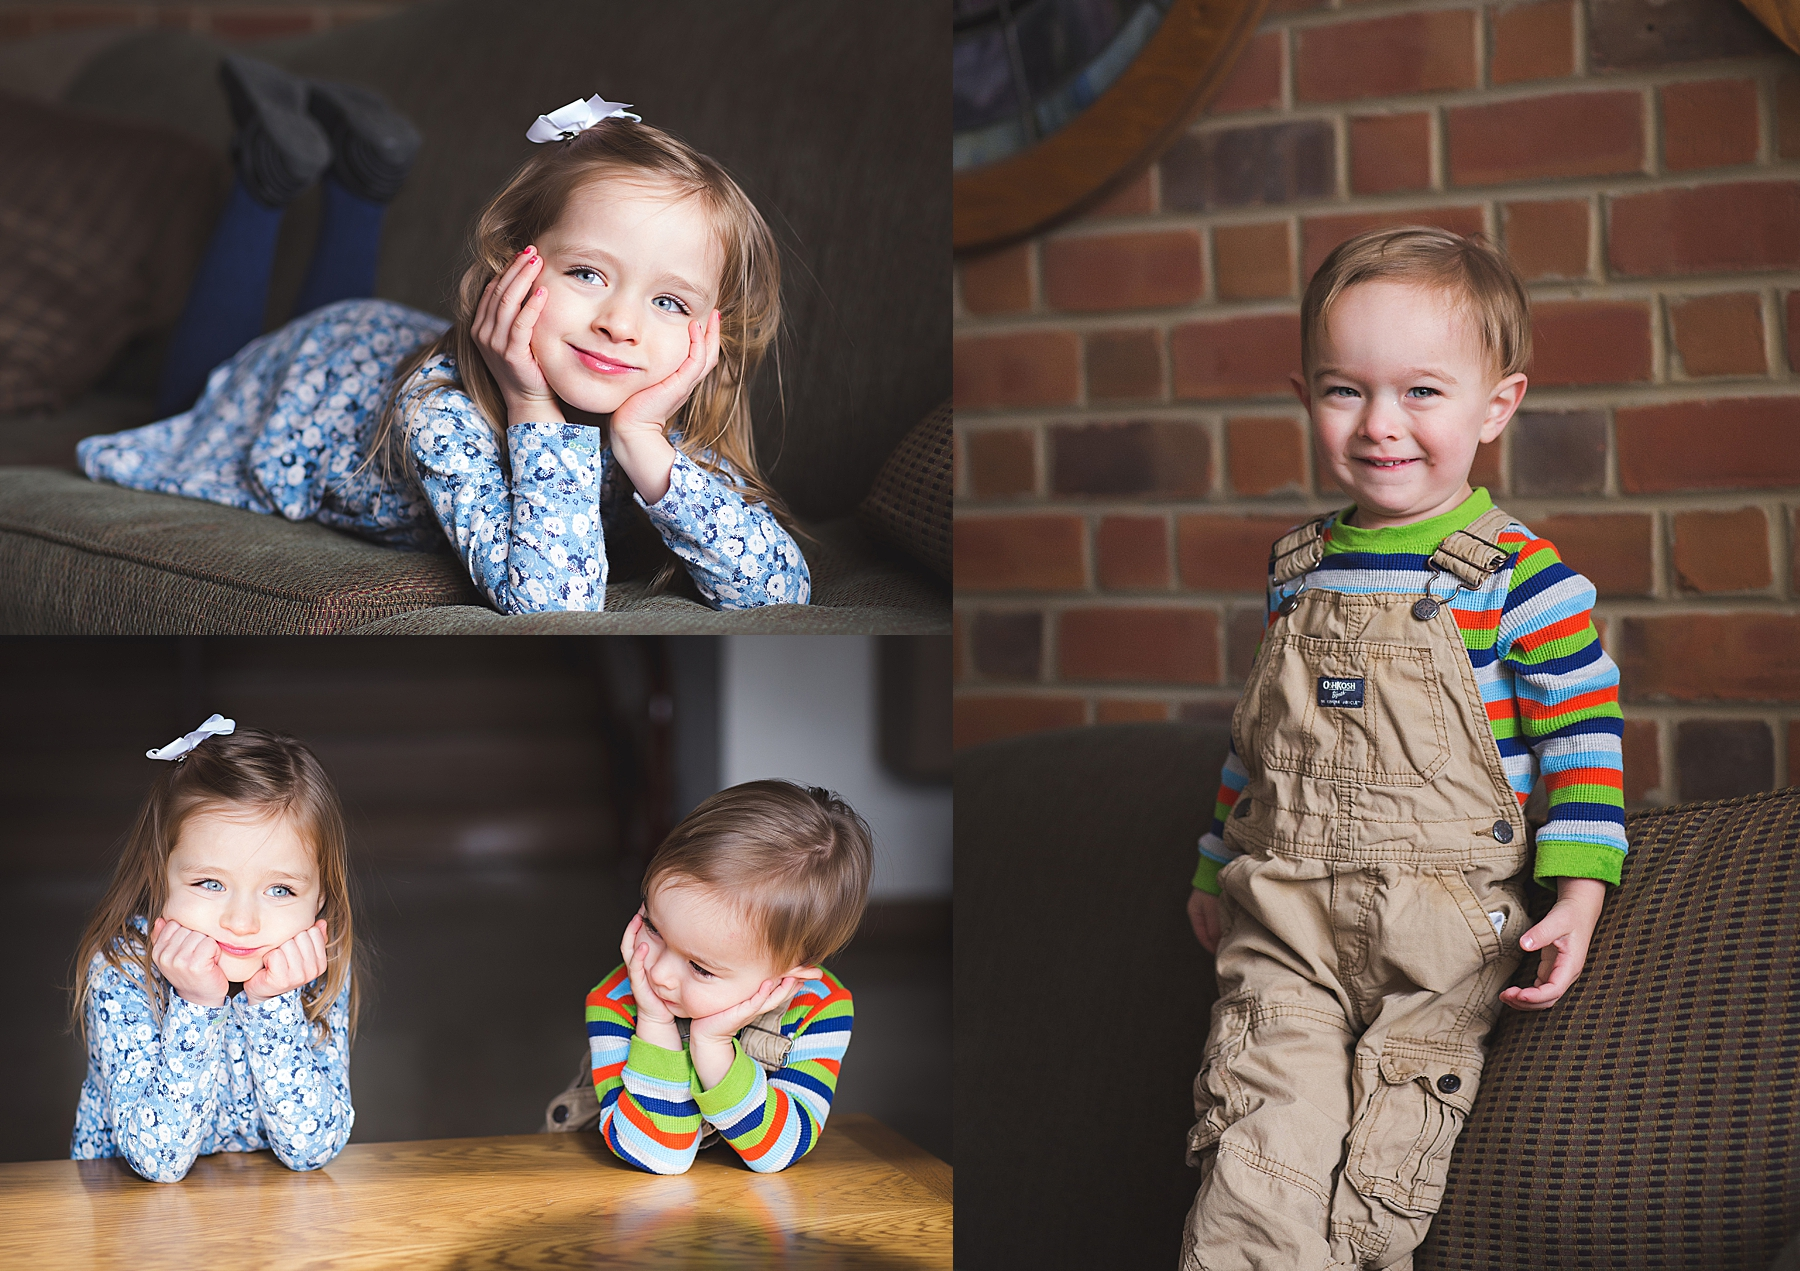 photos of little boy and girl taken with window light how to take good pictures kristina rose photography